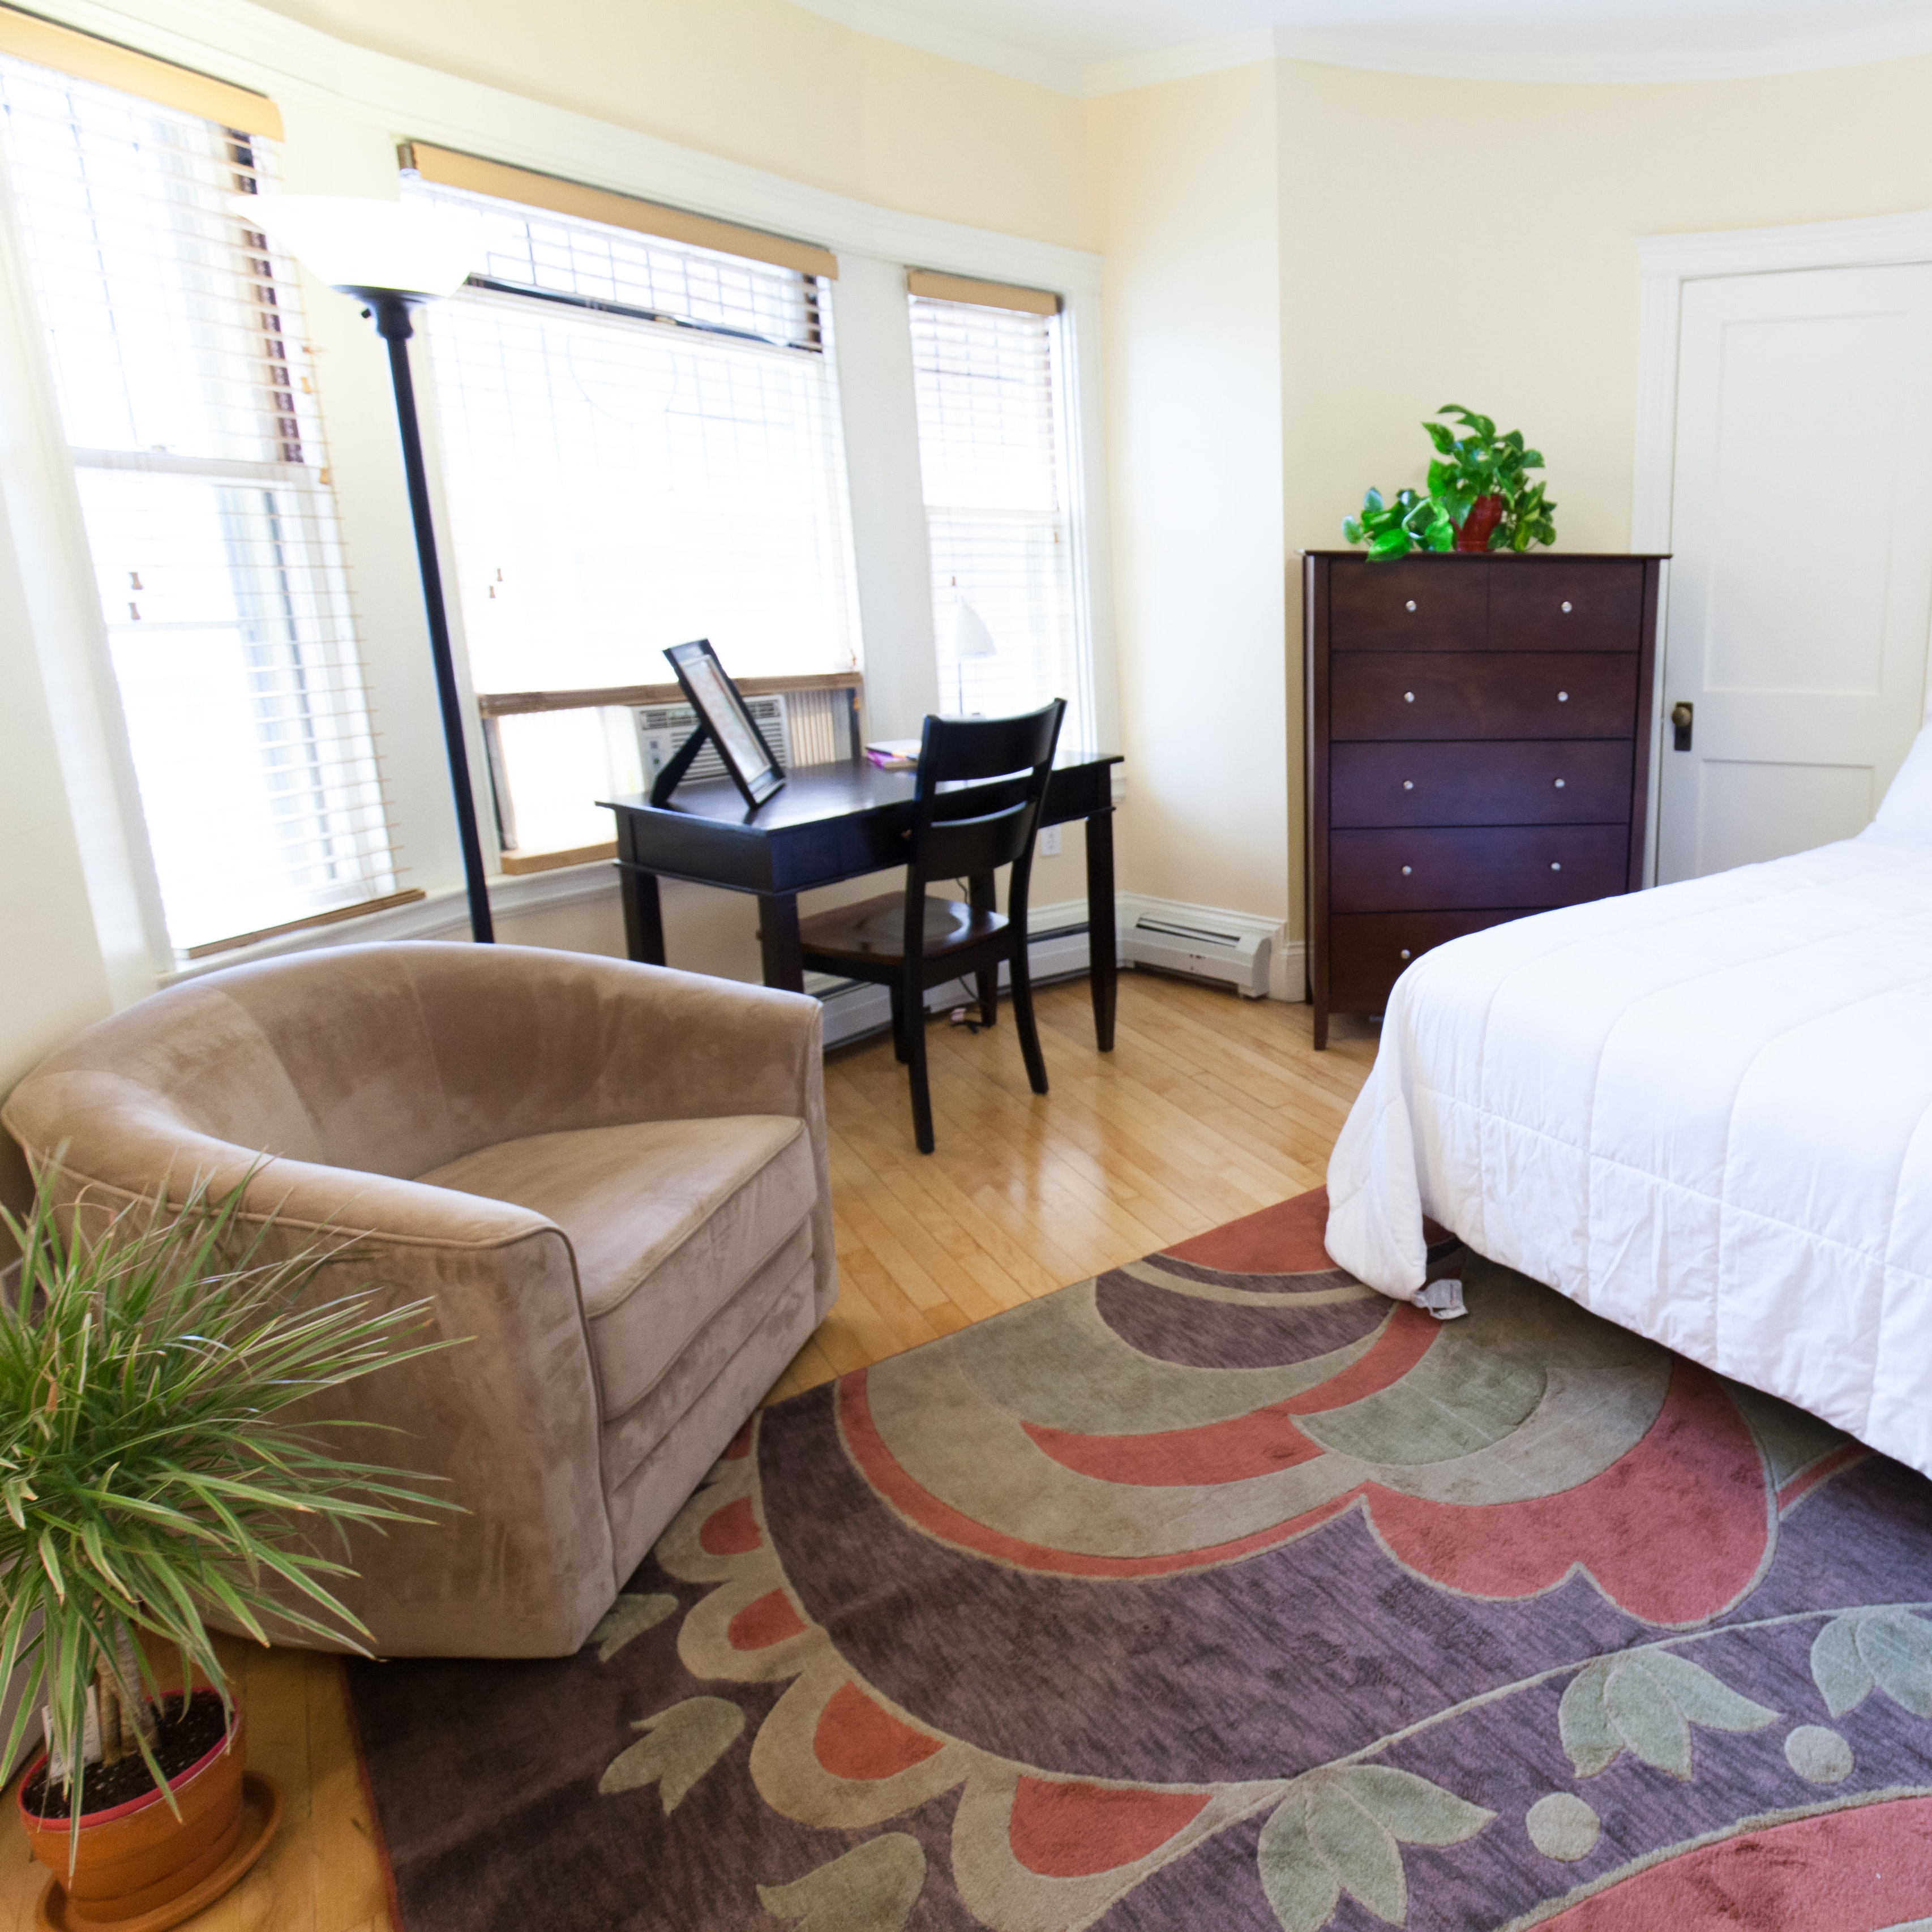 Living space of 83 Brattle Street studio apartment with bed, couch, desk, chair, rug, lamp, and dresser.